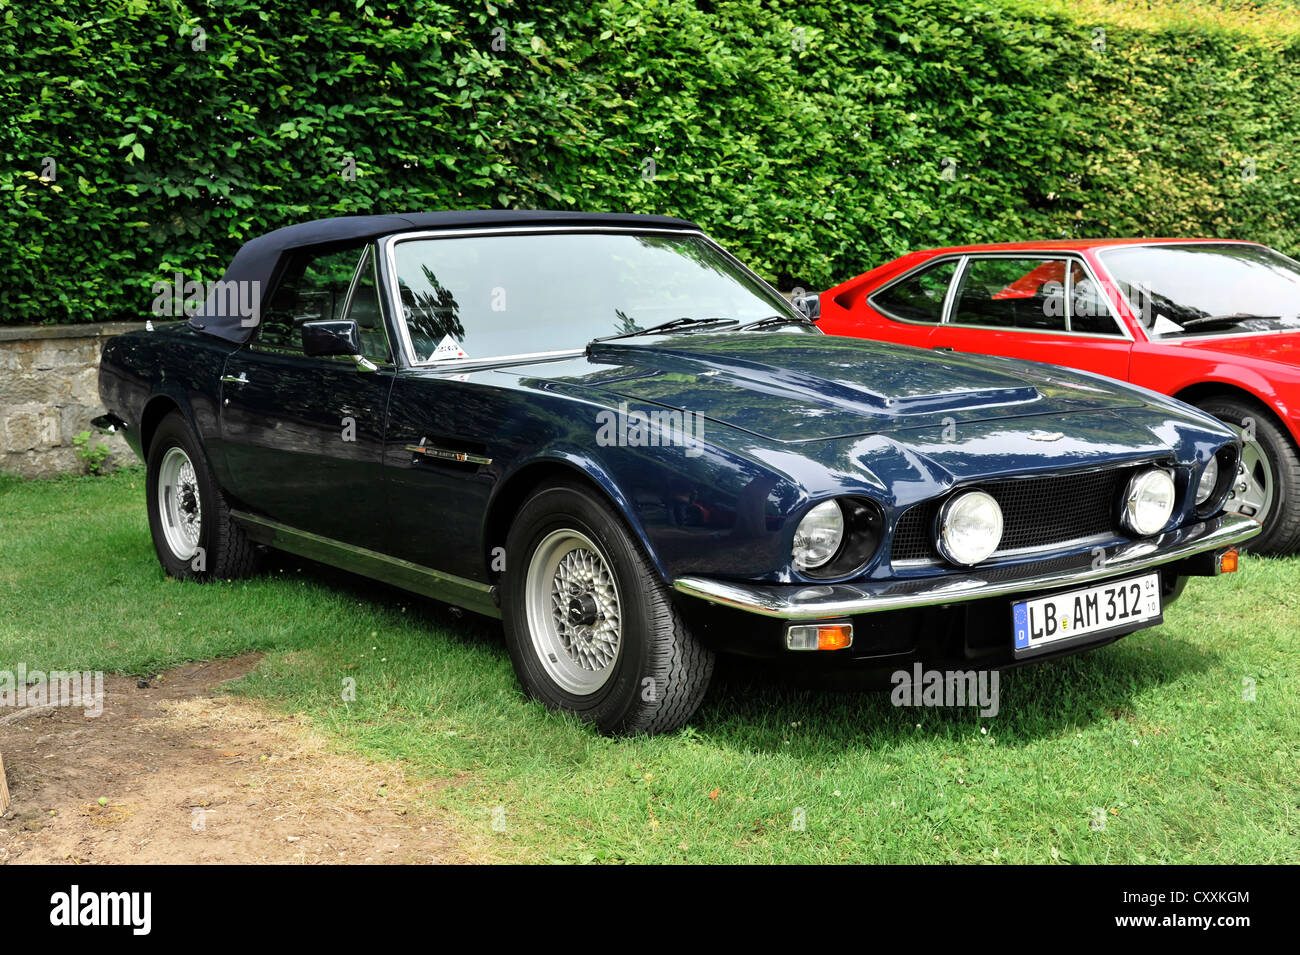 Vintage Aston Martin Cars Stock Photos  Vintage Aston Martin Cars